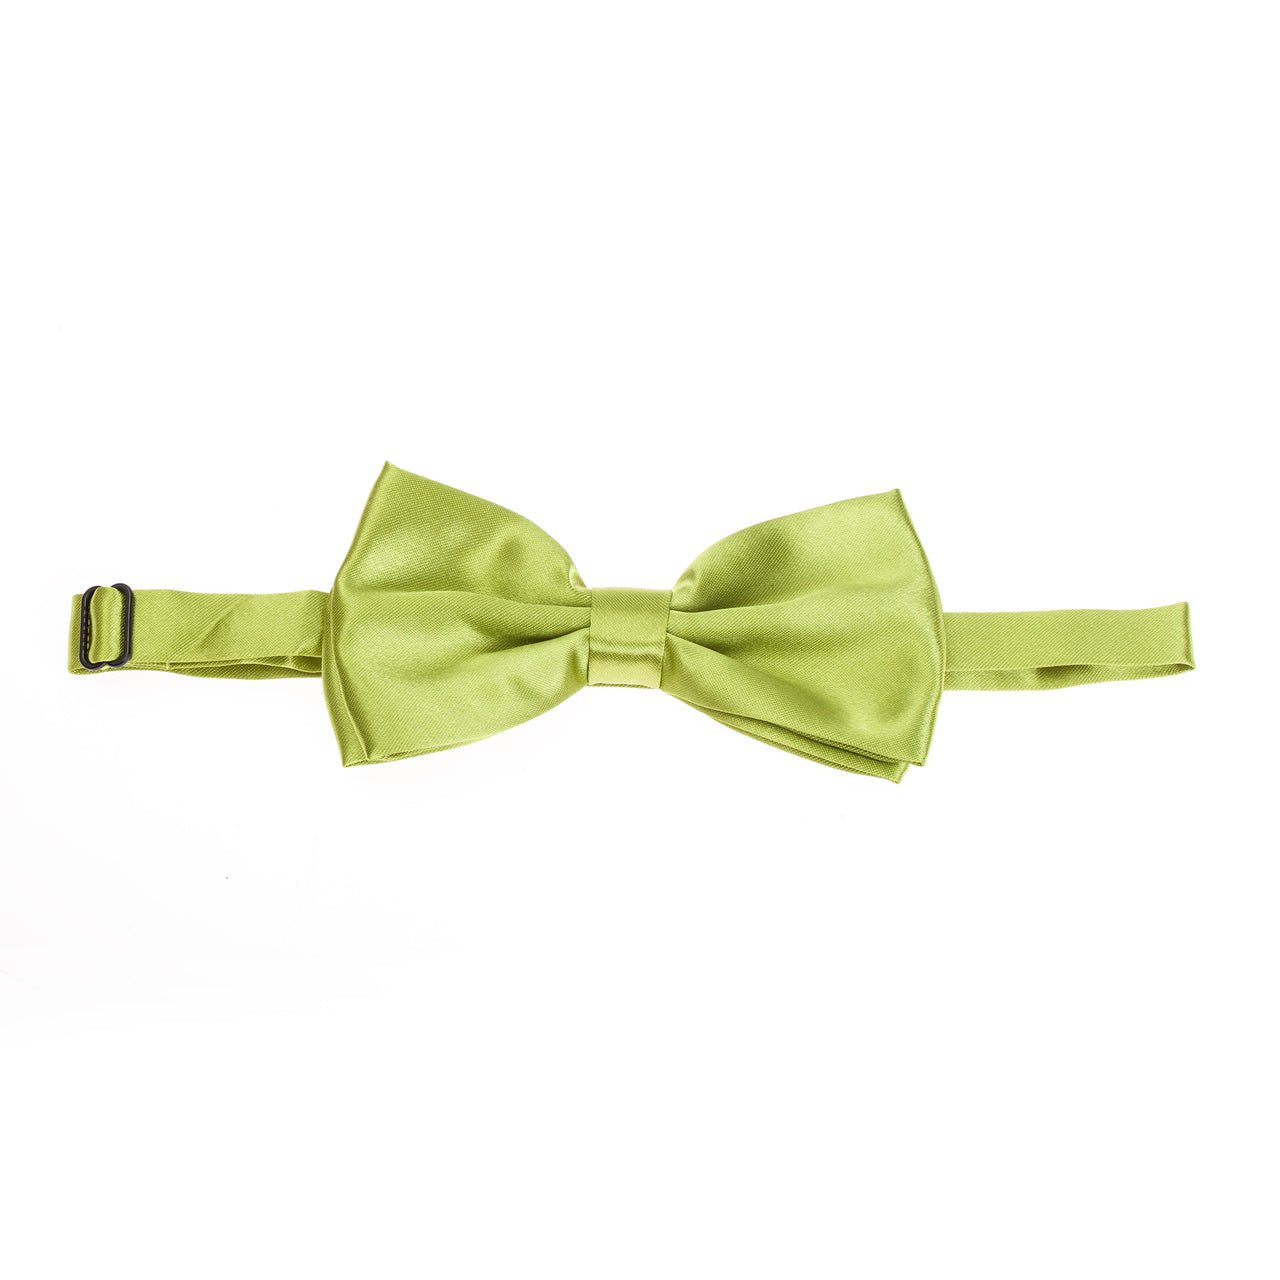 Pre-tied Plain Satin Bow Tie - Apple Green